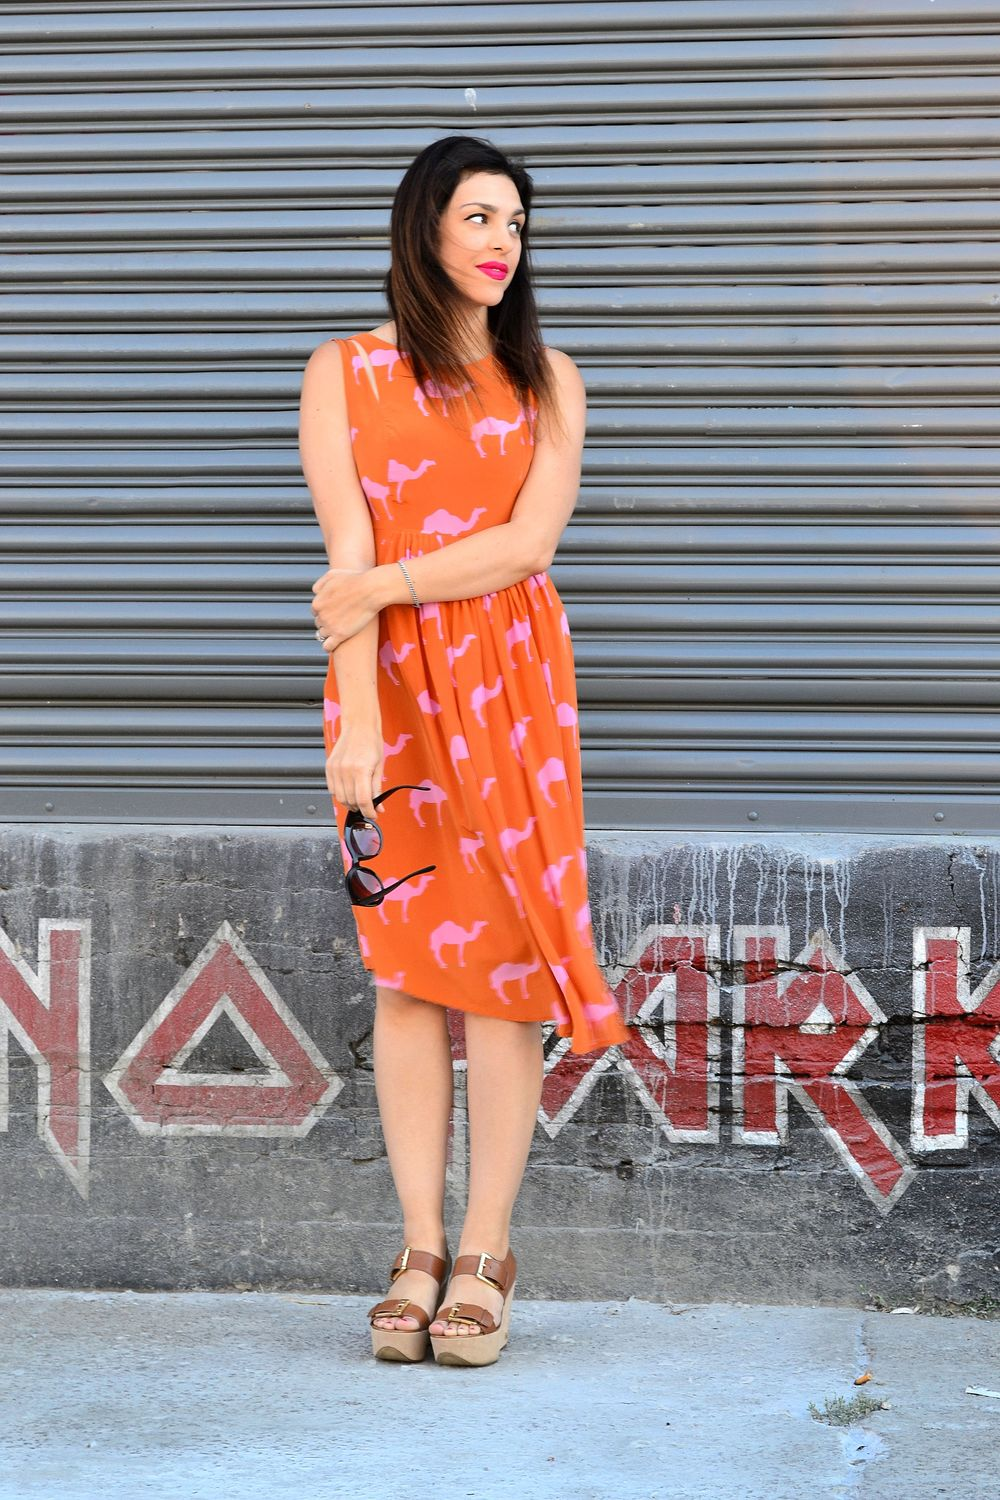 dress- Anthropologie thrifted at Crossroads Trading Co./ sandals- Michael Kors/ sunglasses- Urban Outfitters